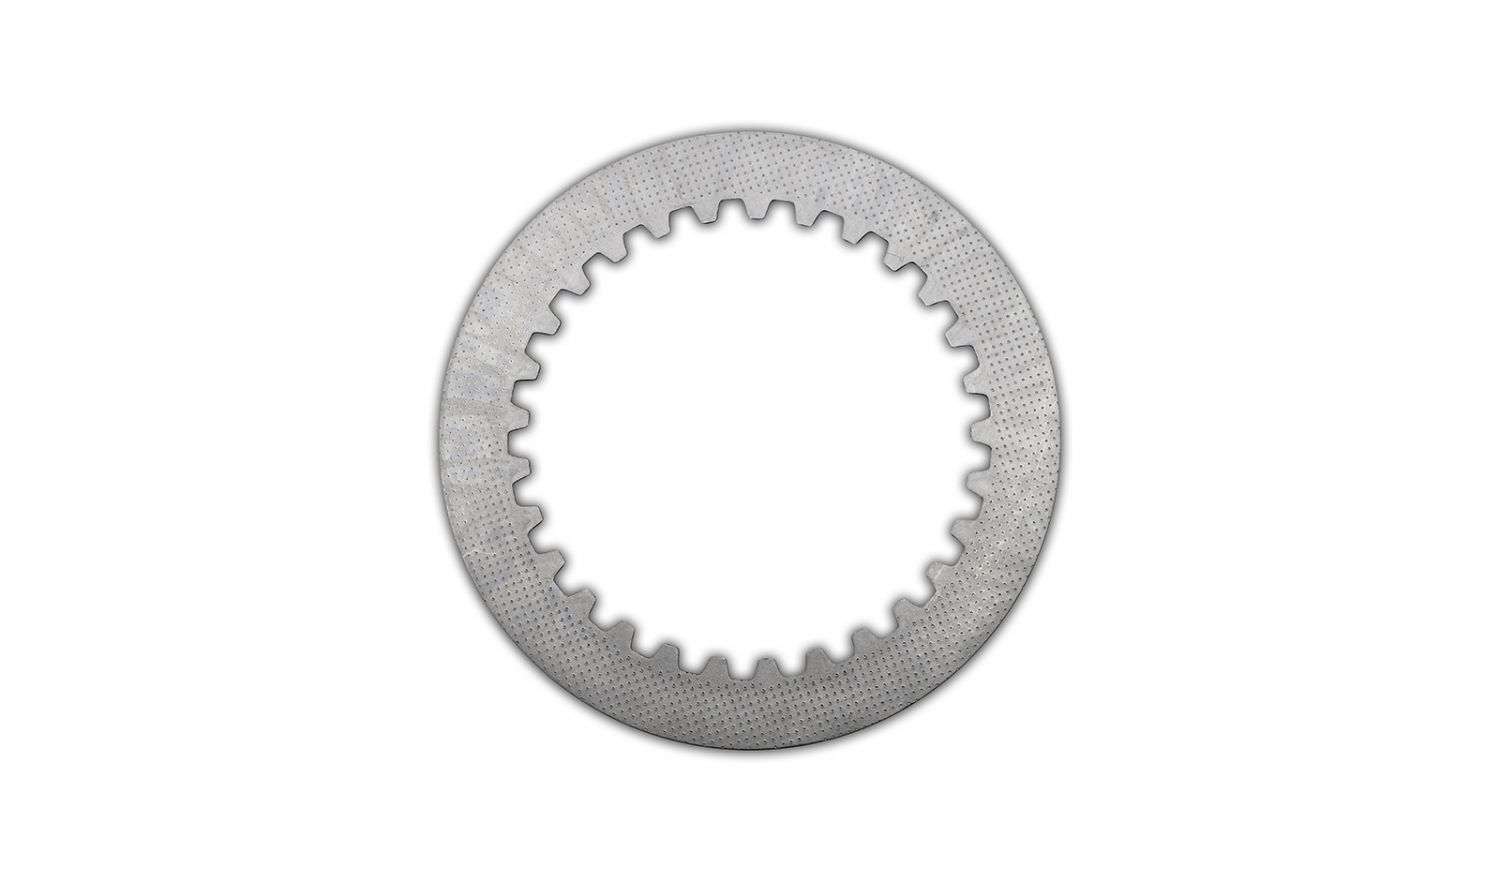 Clutch Metal Plates - 305533H image